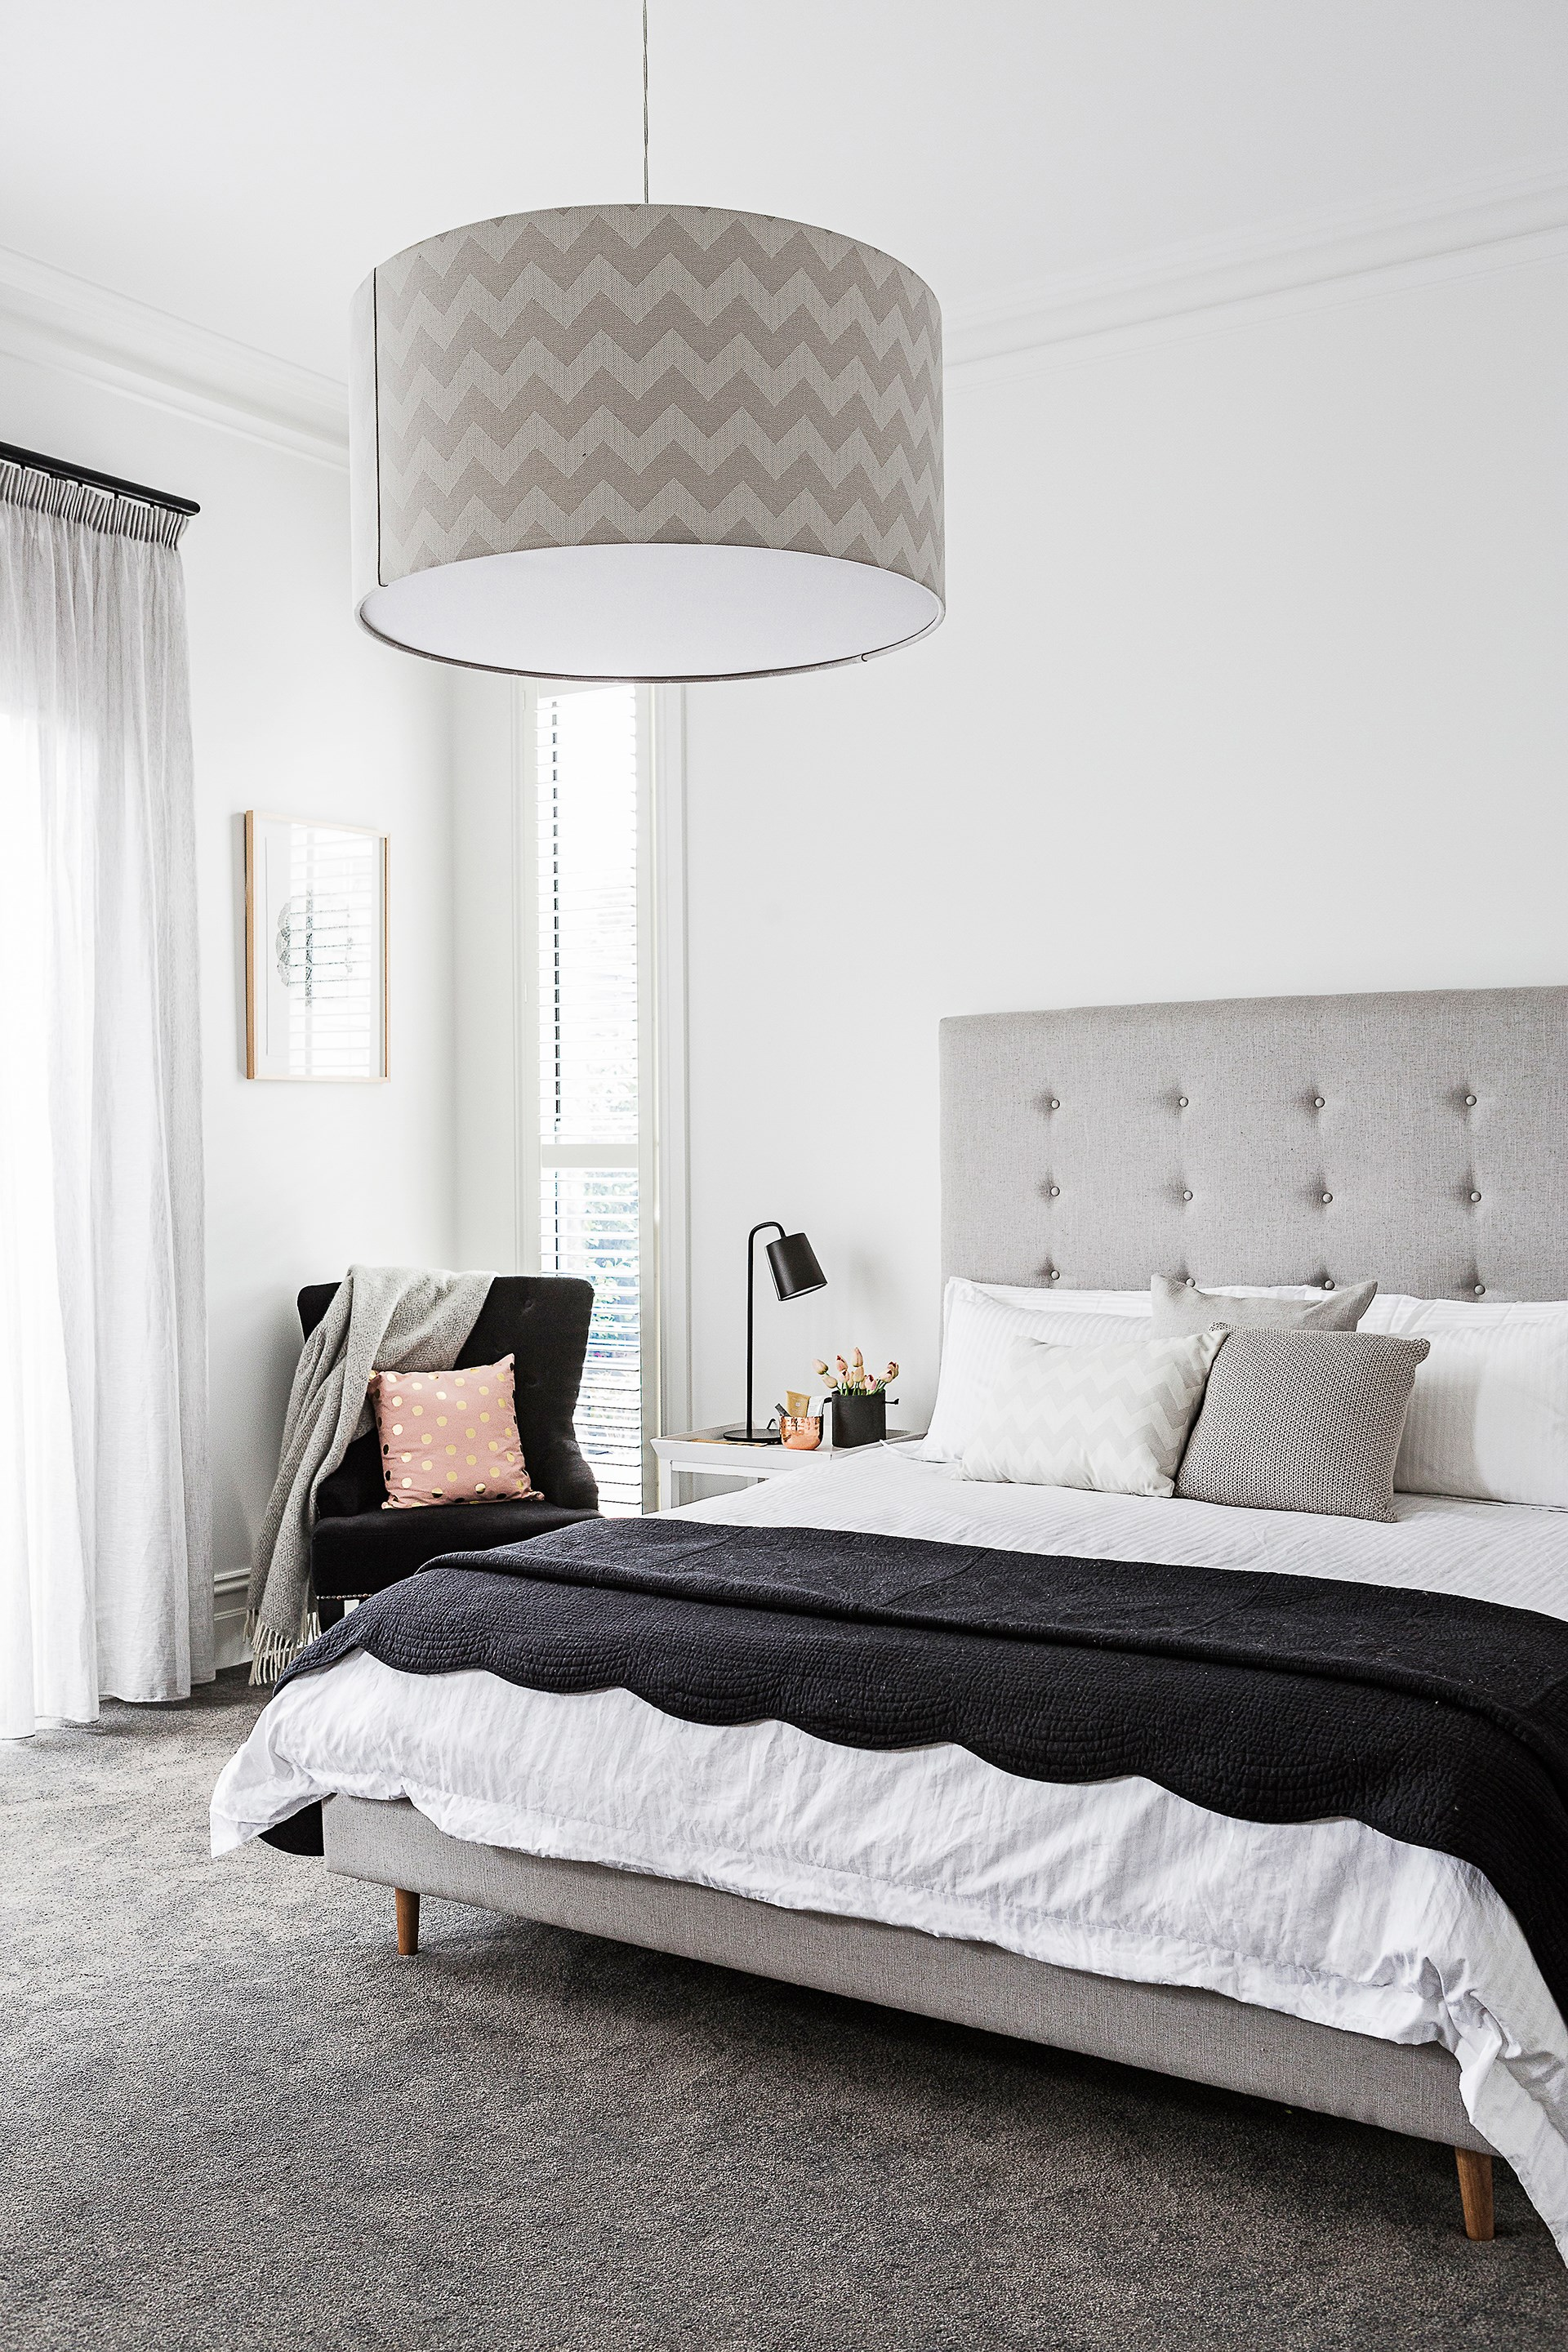 5 creative bedhead ideas to inspire homes for Different bed designs